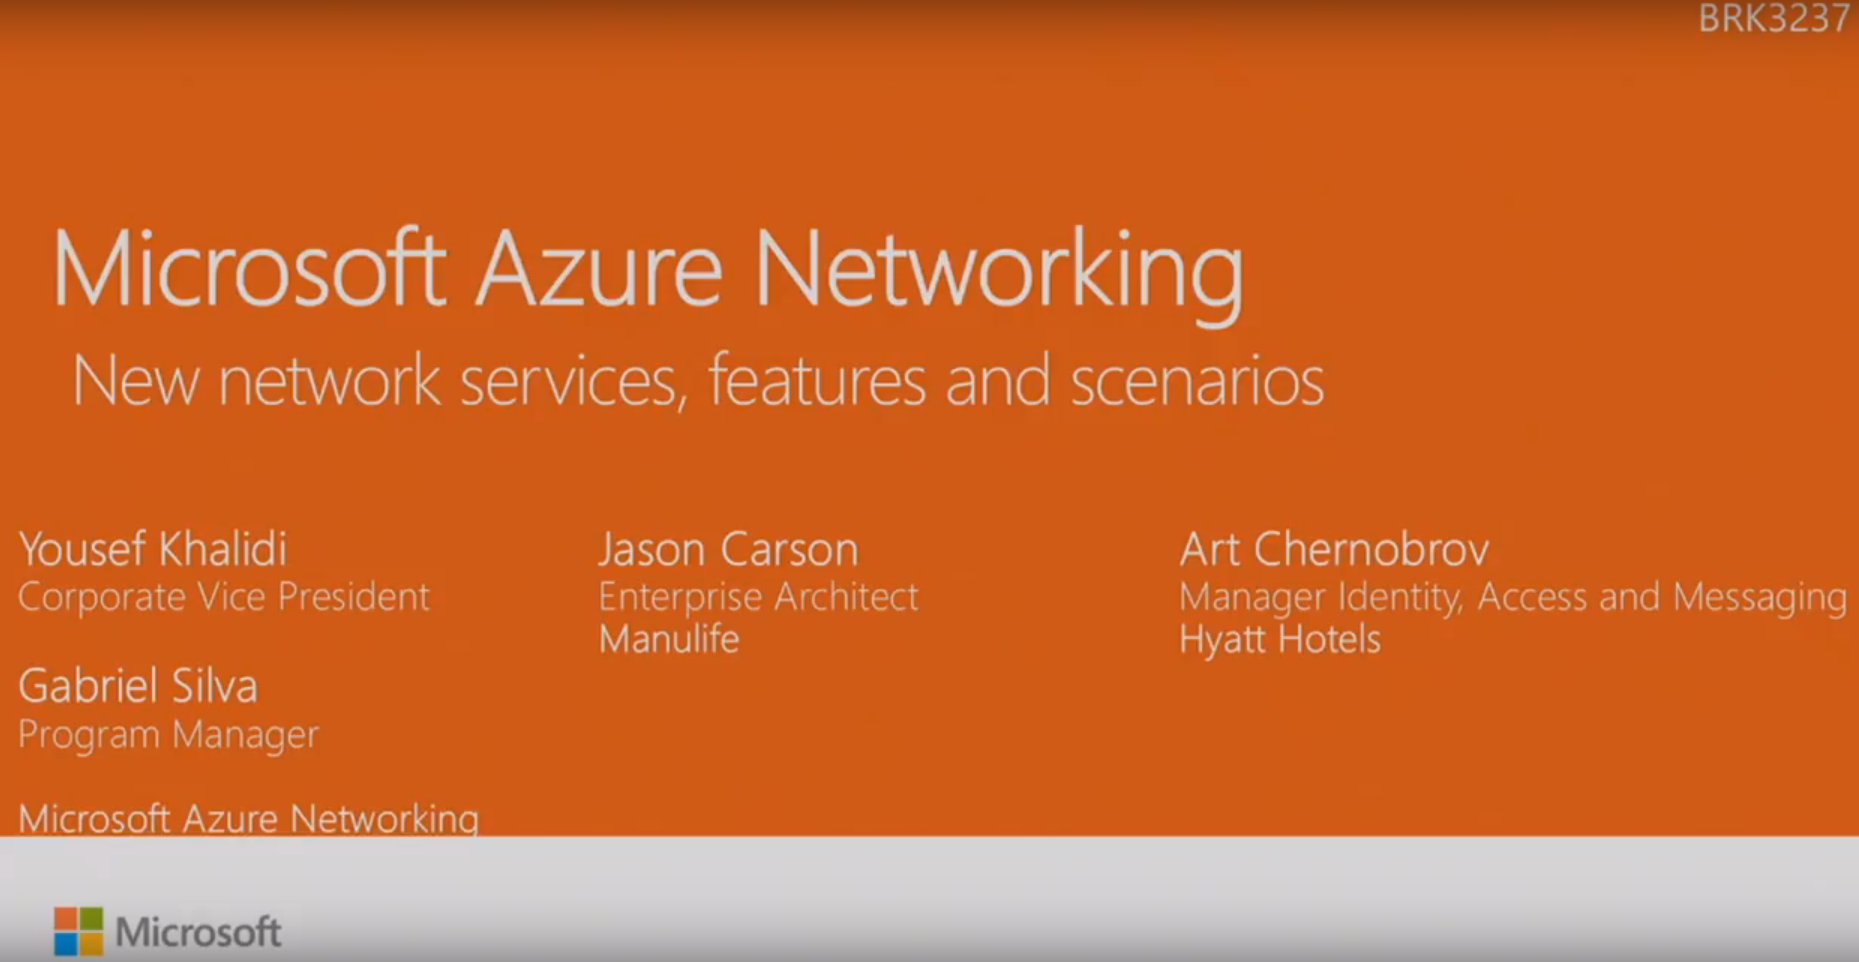 Ignite 2016 – Microsoft Azure Networking: New Network Services, Features And Scenarios